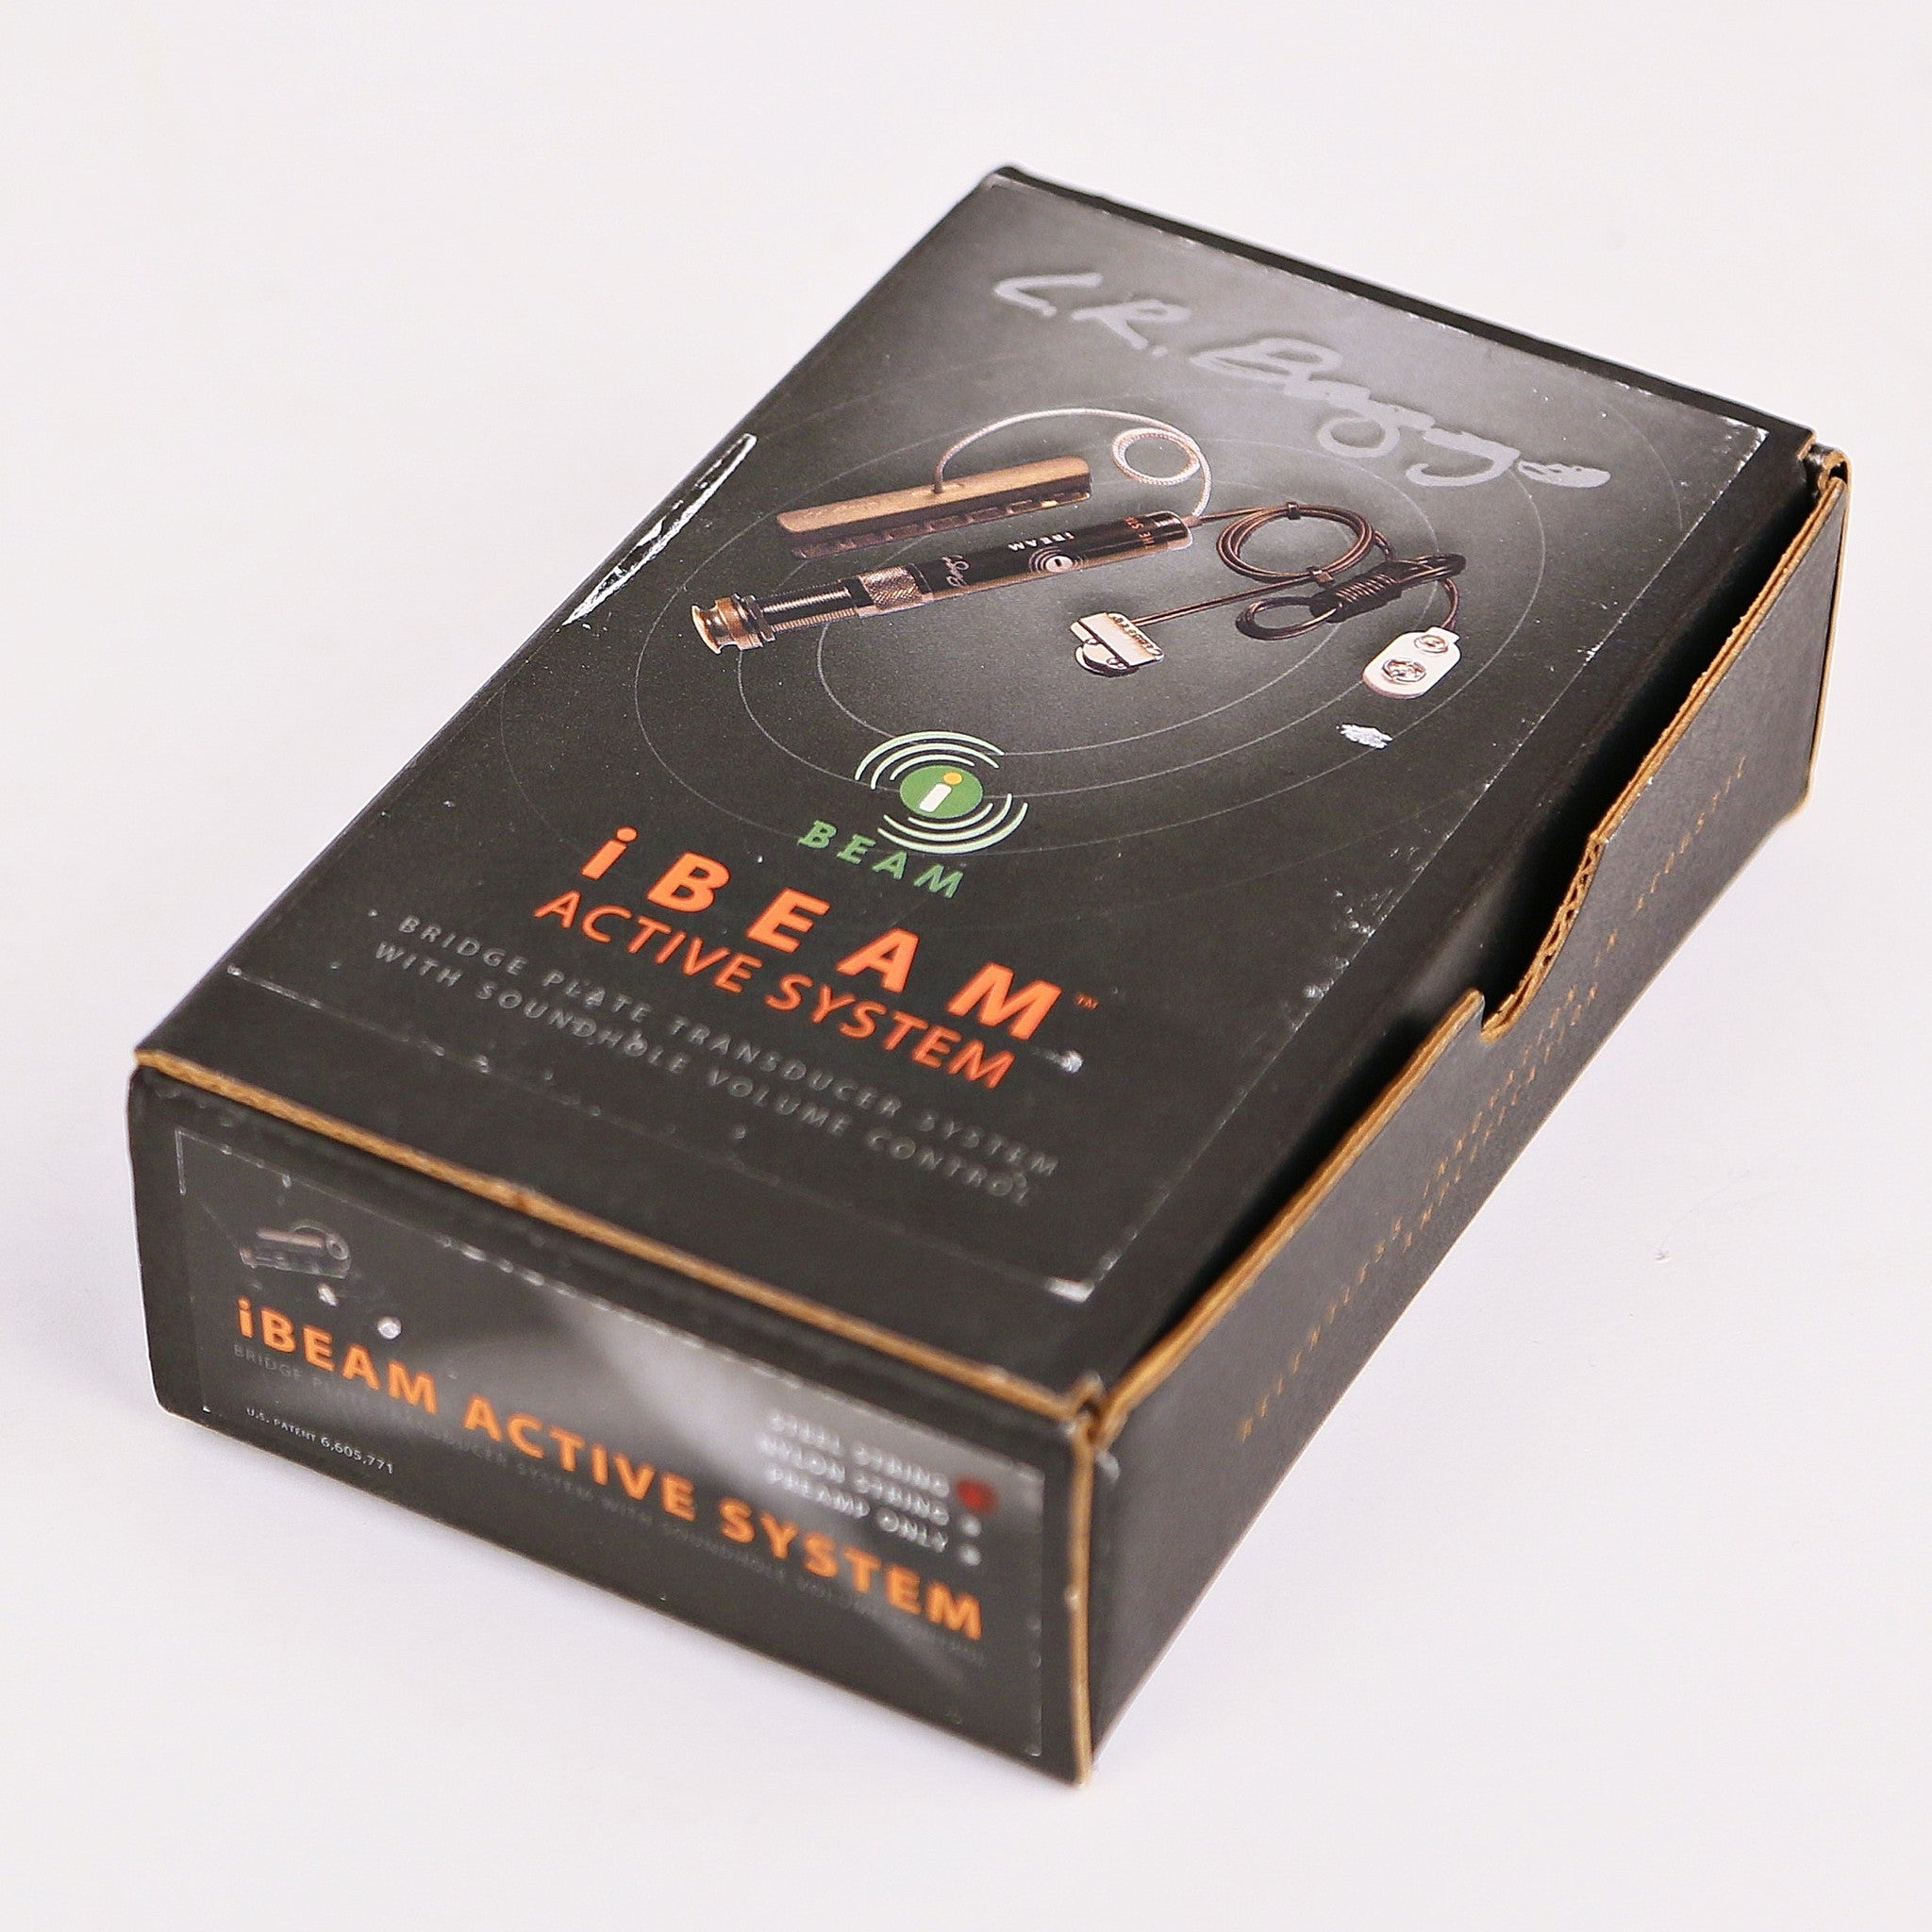 LR Baggs iBeam Active System